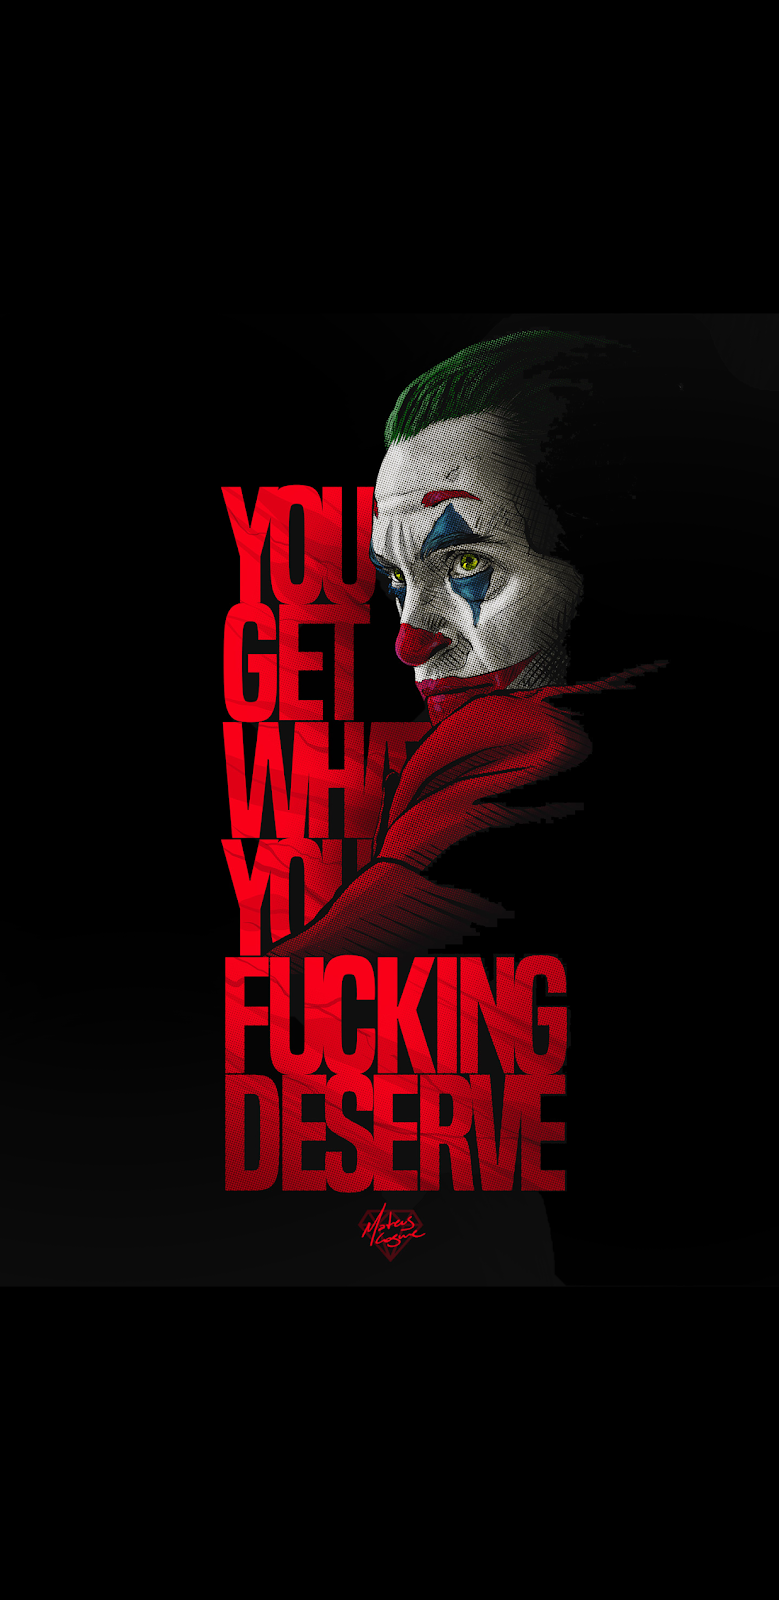 JOKER WALLPAPER PHONE HD (With images) Joker hd